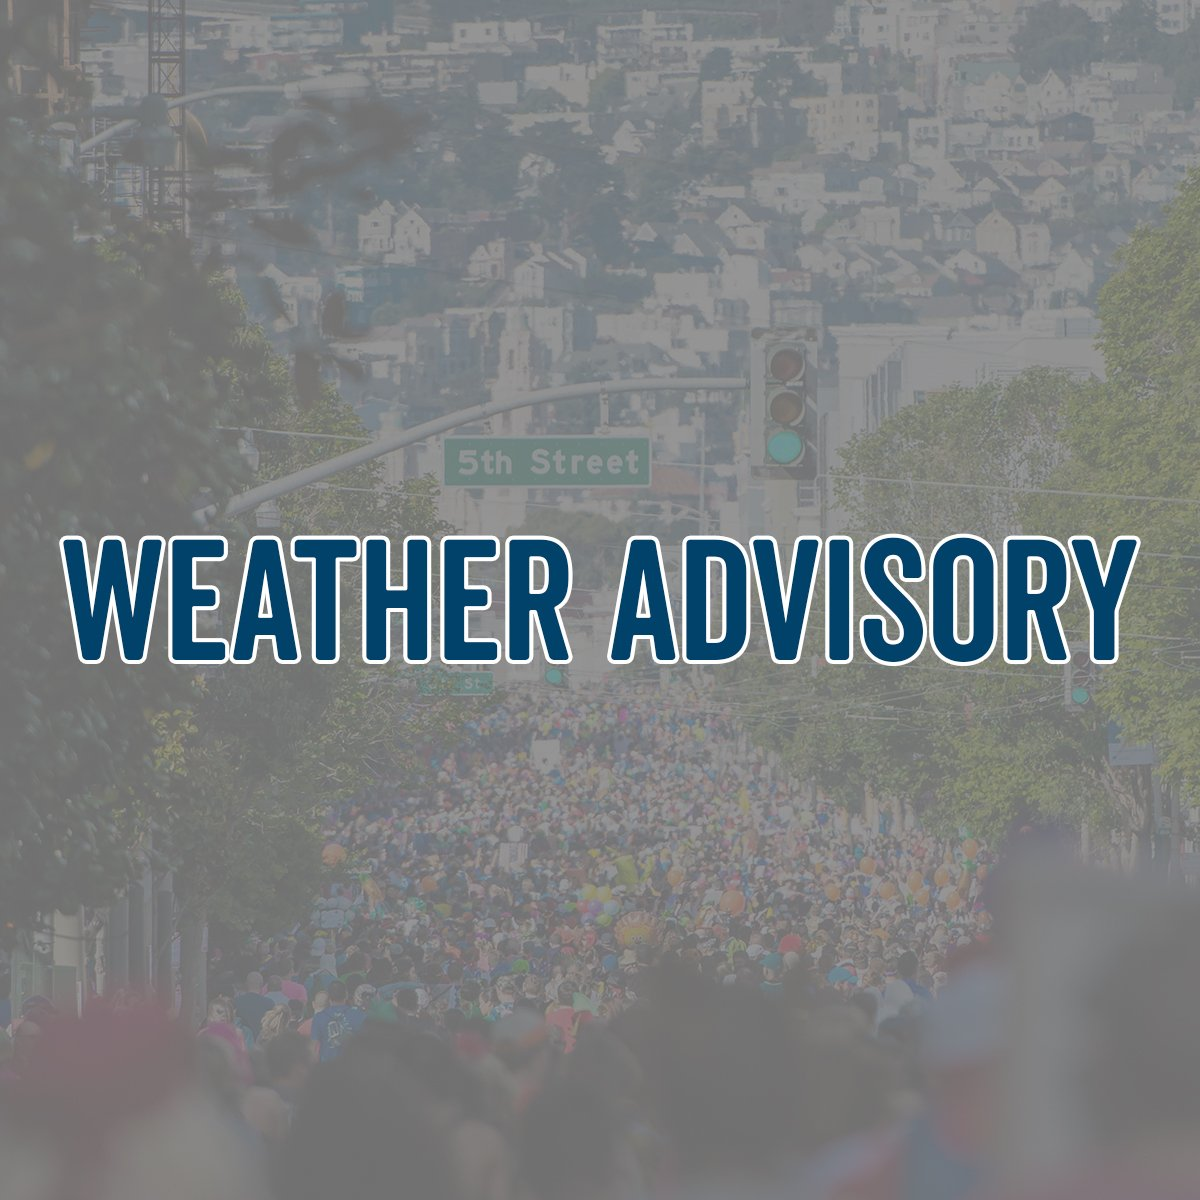 WEATHER ADVISORY -- Please follow the below link for an update on corral entrance opening tomorrow: bit.ly/2JNWfw5